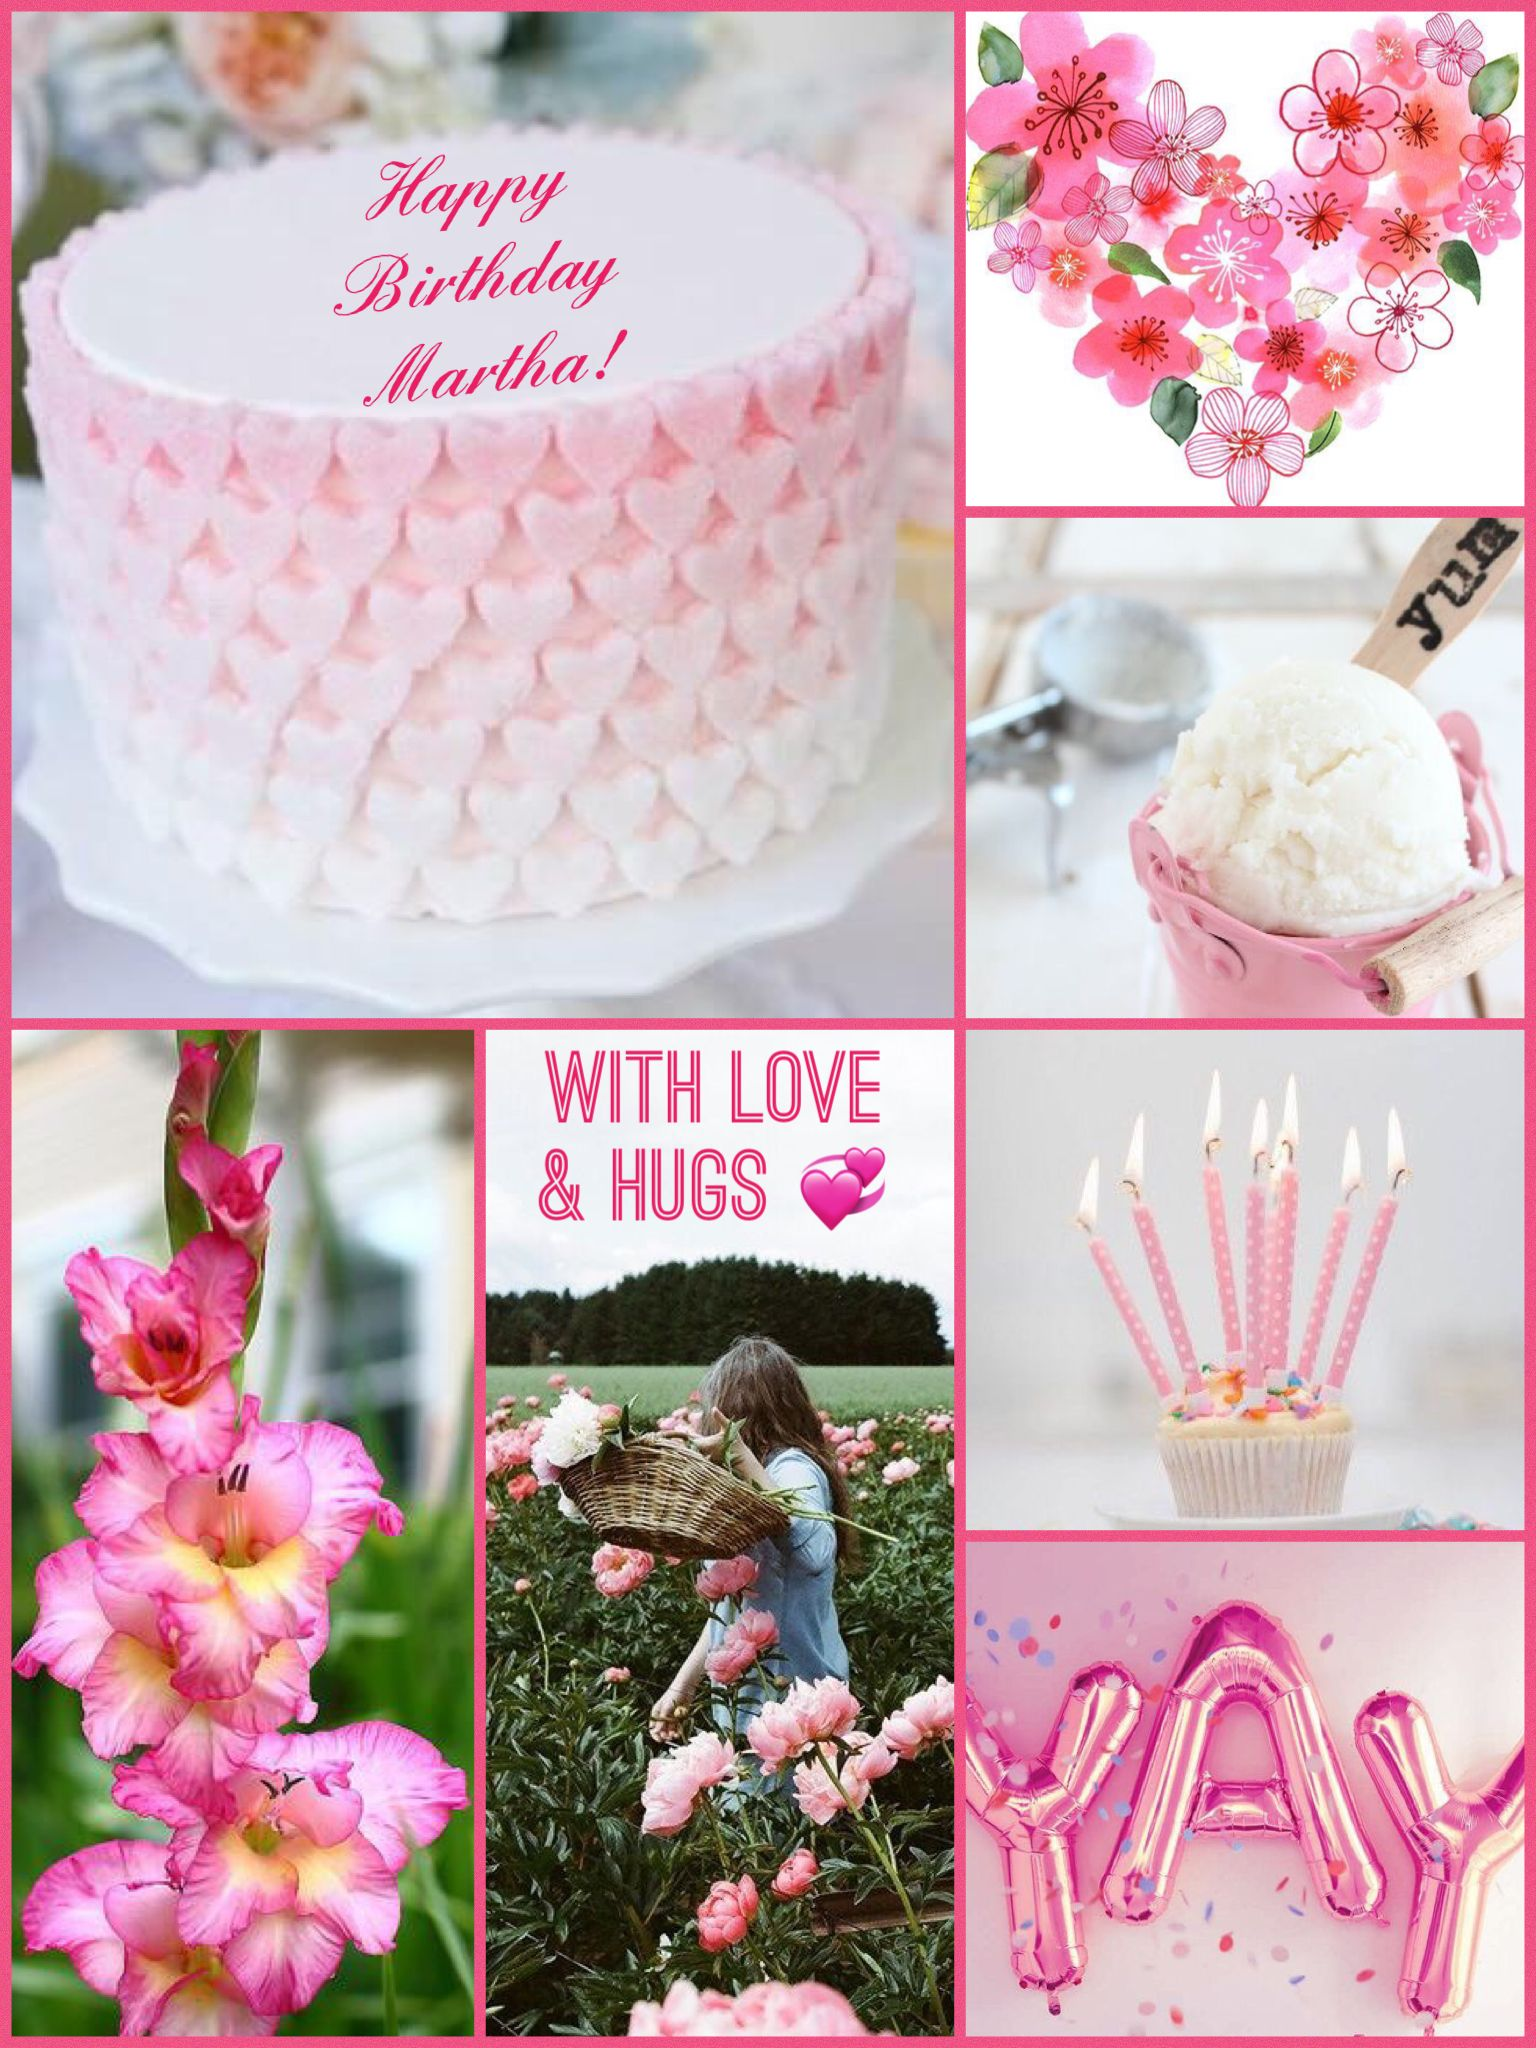 Happy Birthday Dear Martha I Wish You A Lovely Day And Blessed Year Ahead Love Hugs Mimmi